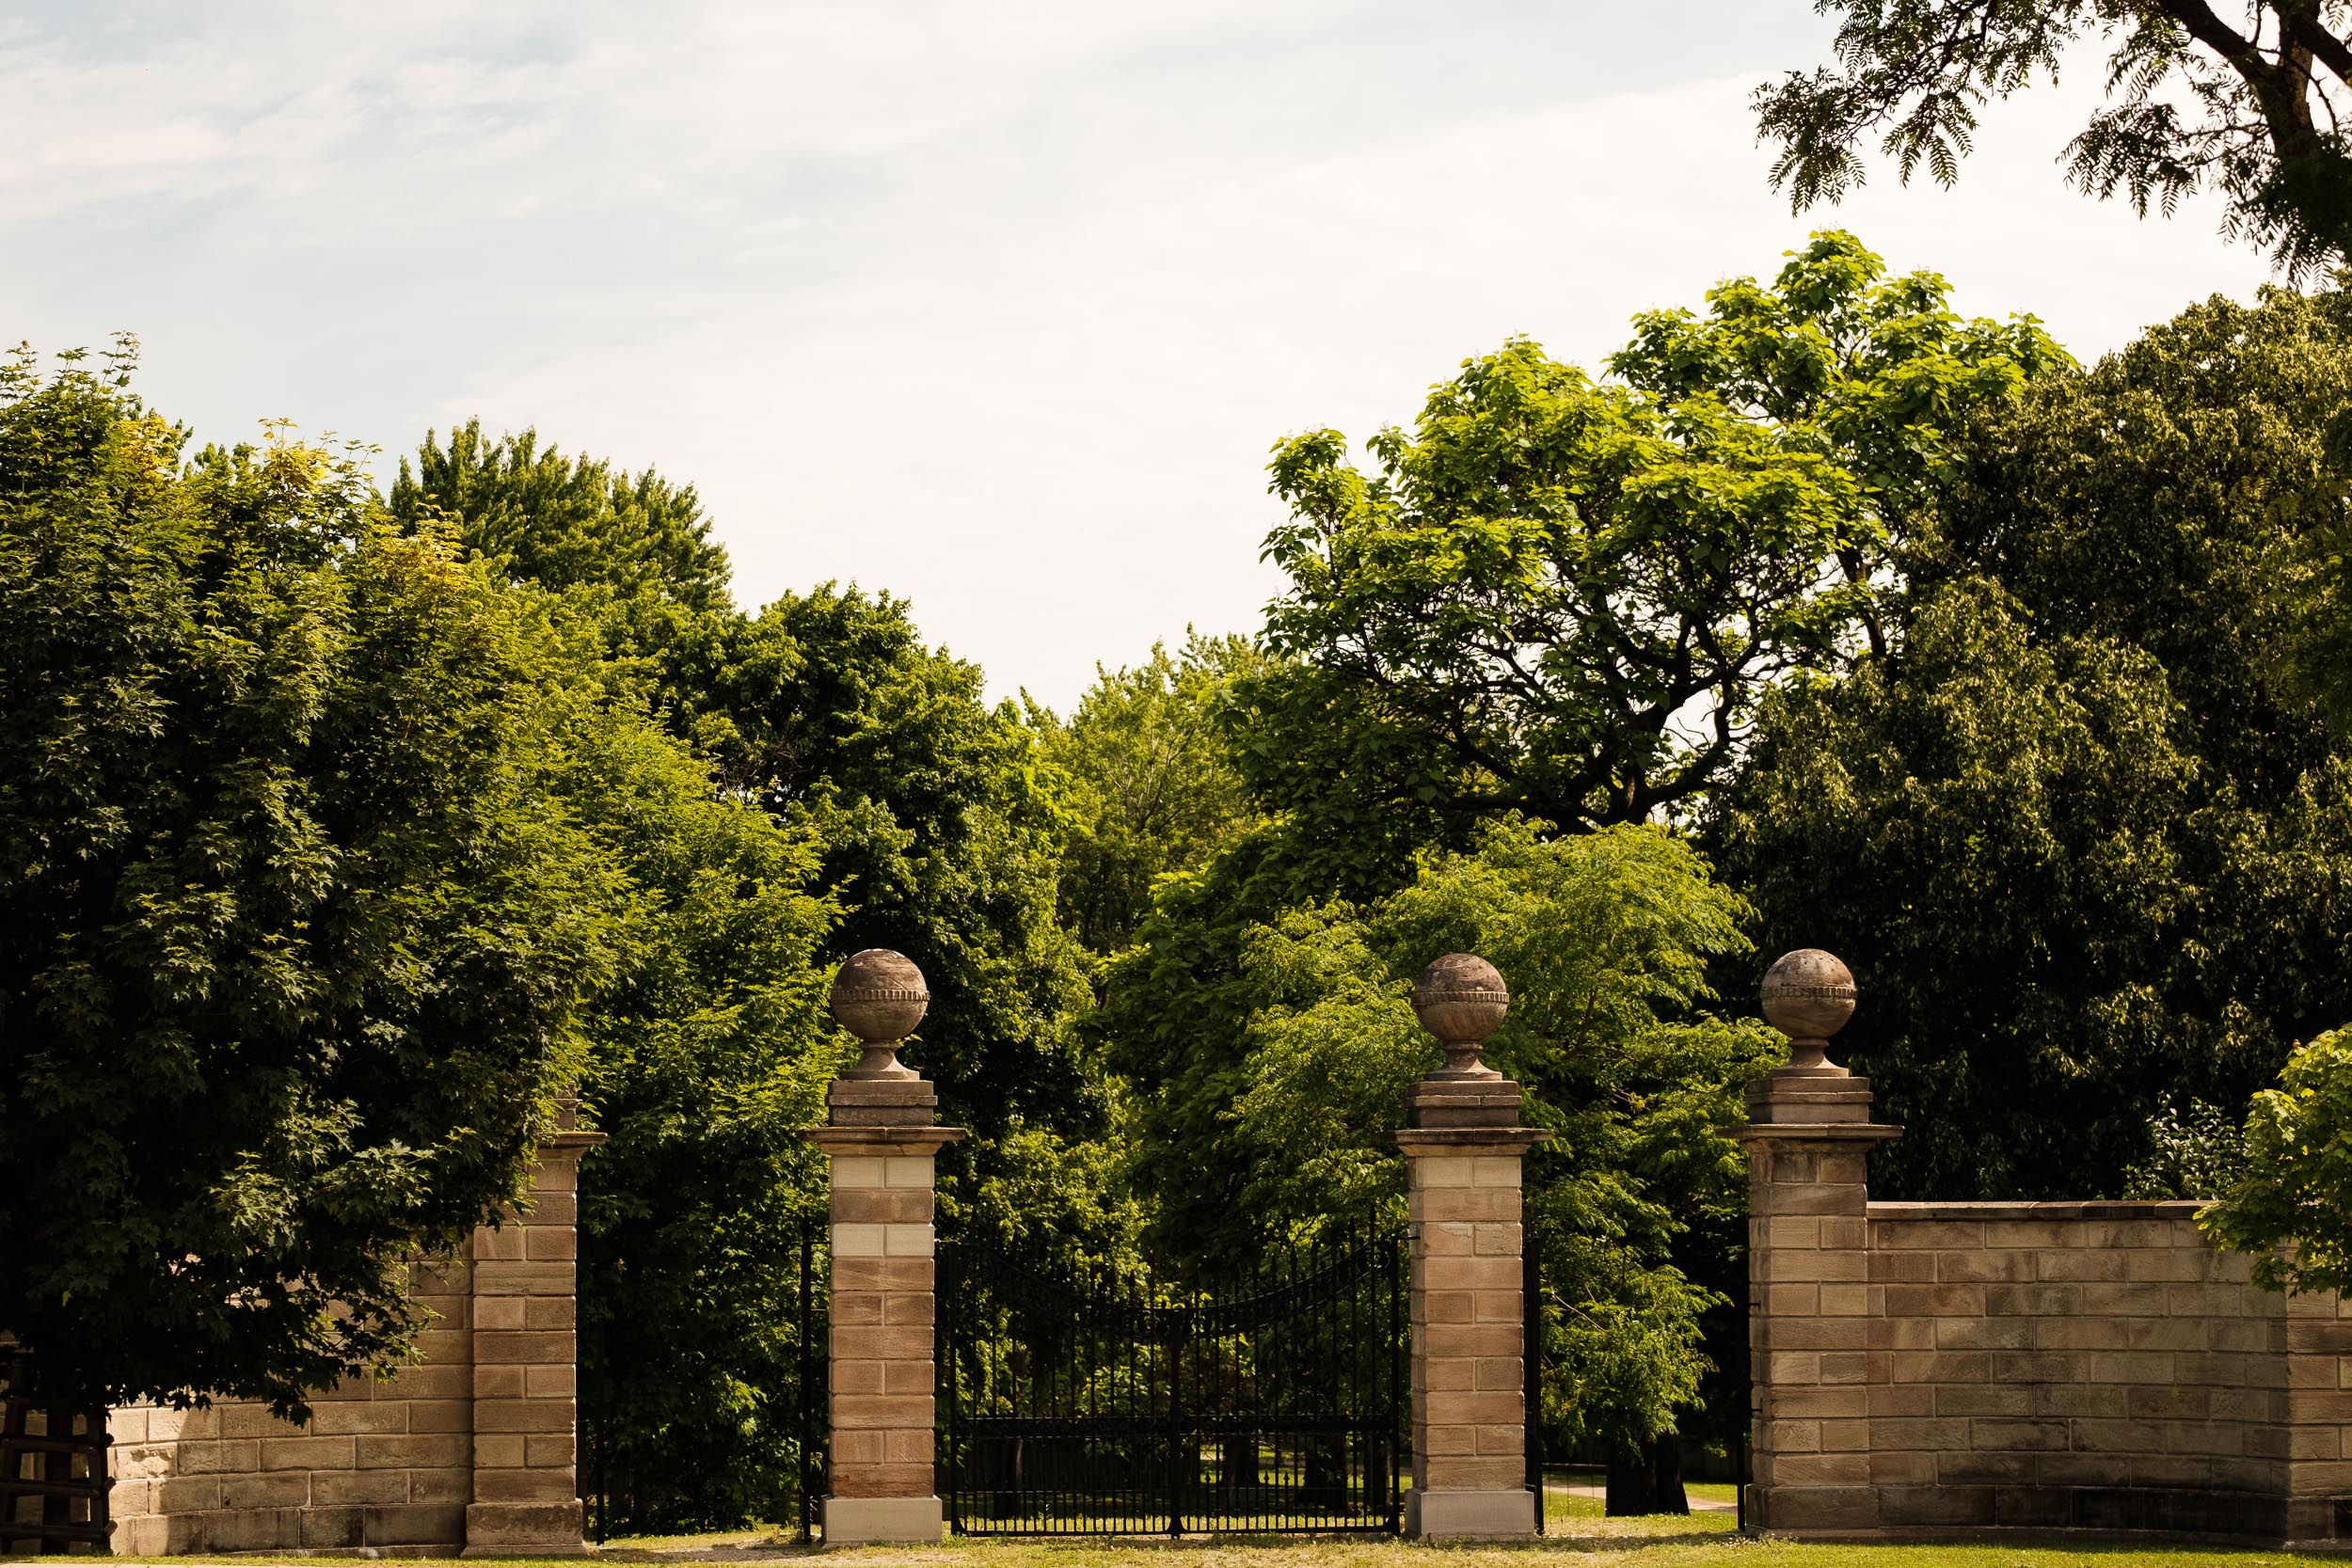 Welcome, to history. - Dundurn National Historic Site